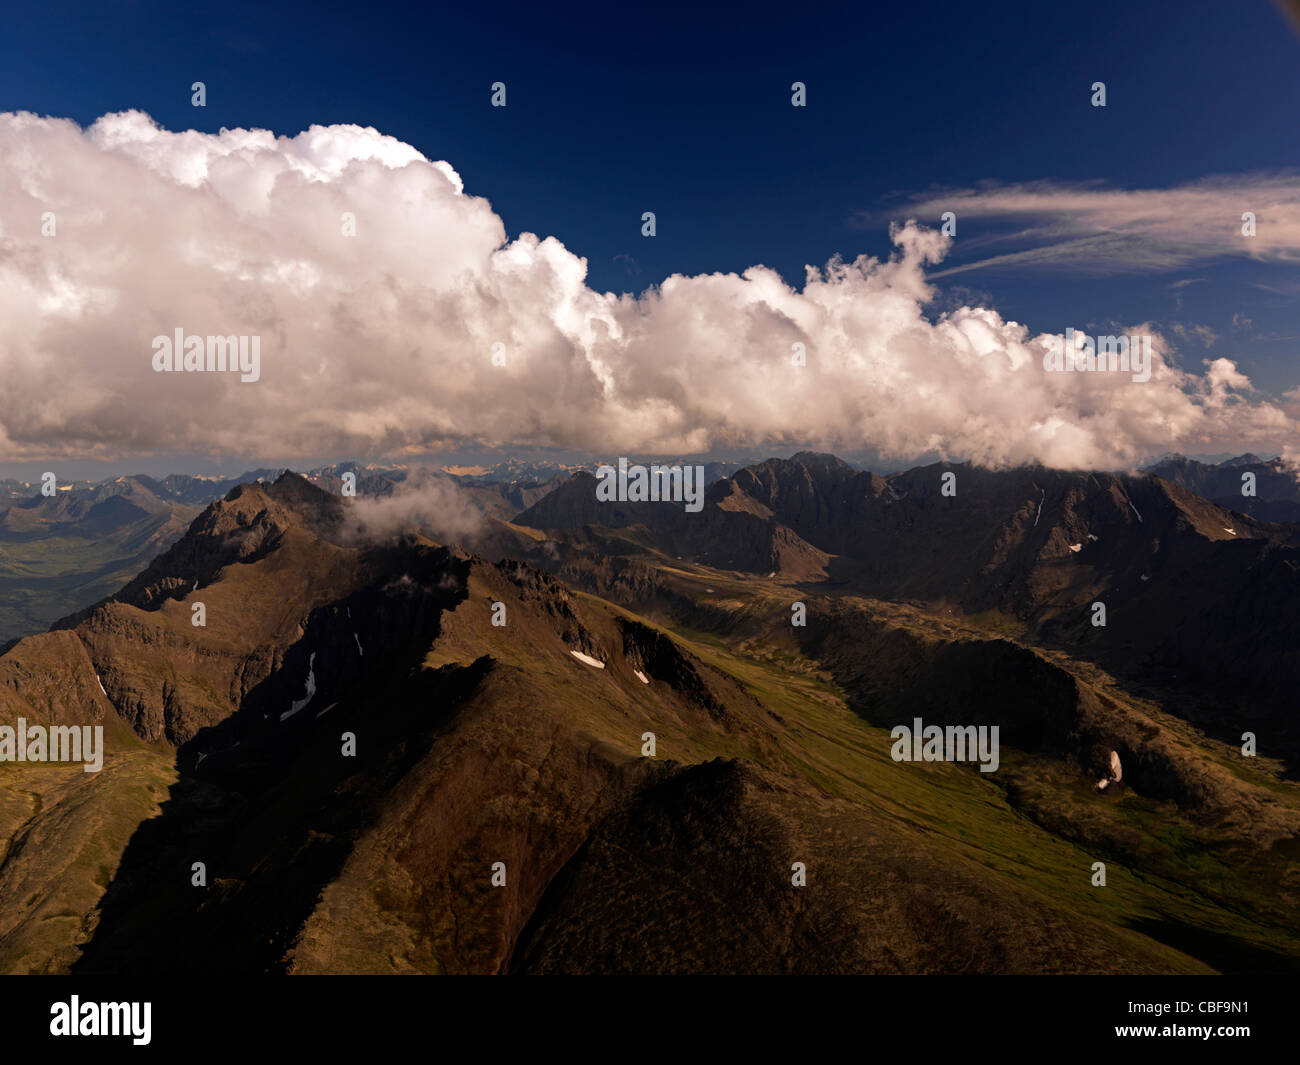 White clouds over the Chugach Mountains in Alaska, USA - Stock Image